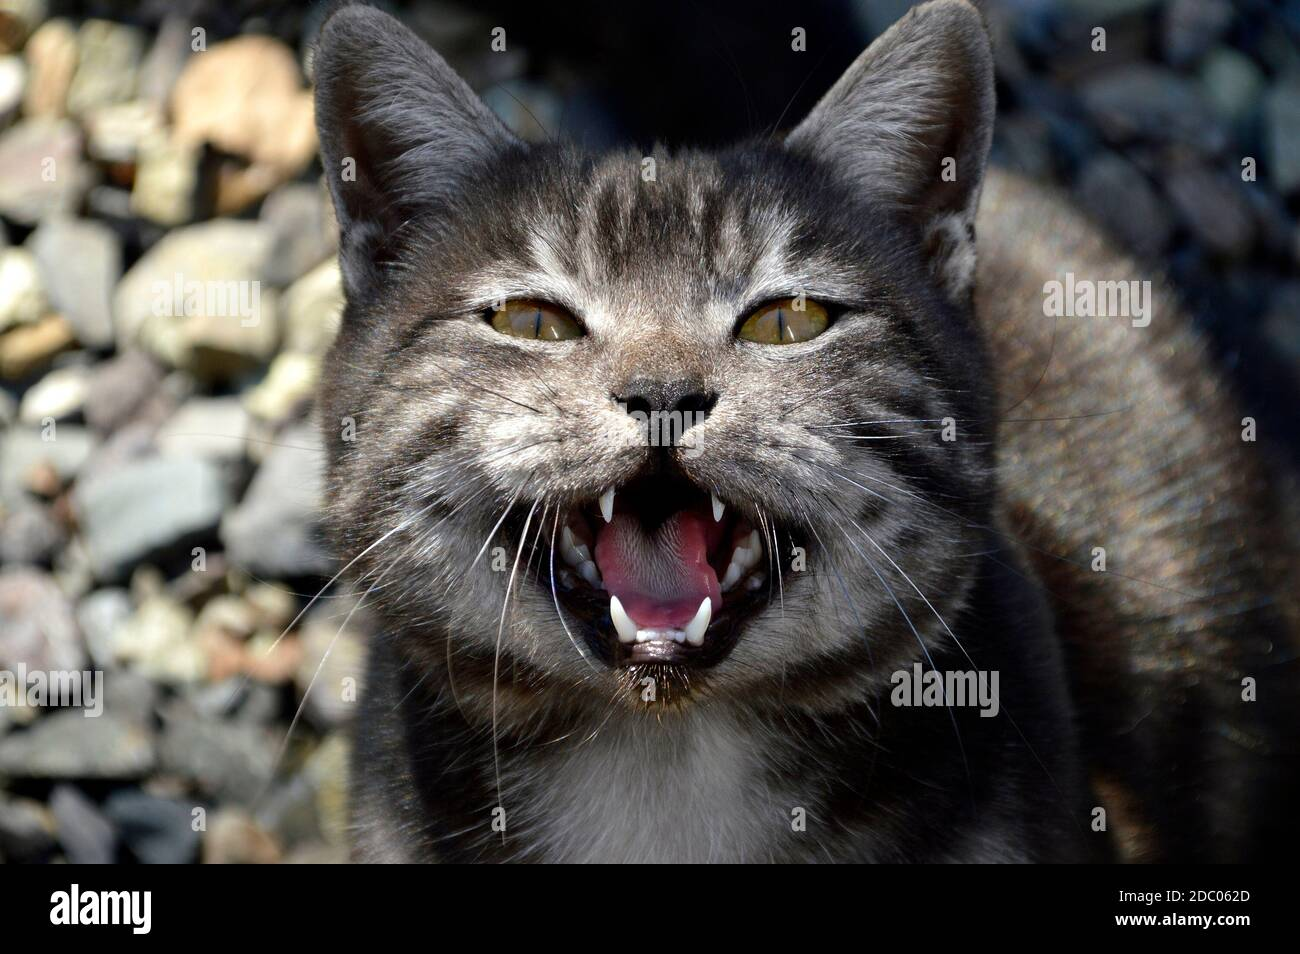 Portrait of 1 year old black cat with gray stripes meowing and asking food Stock Photo